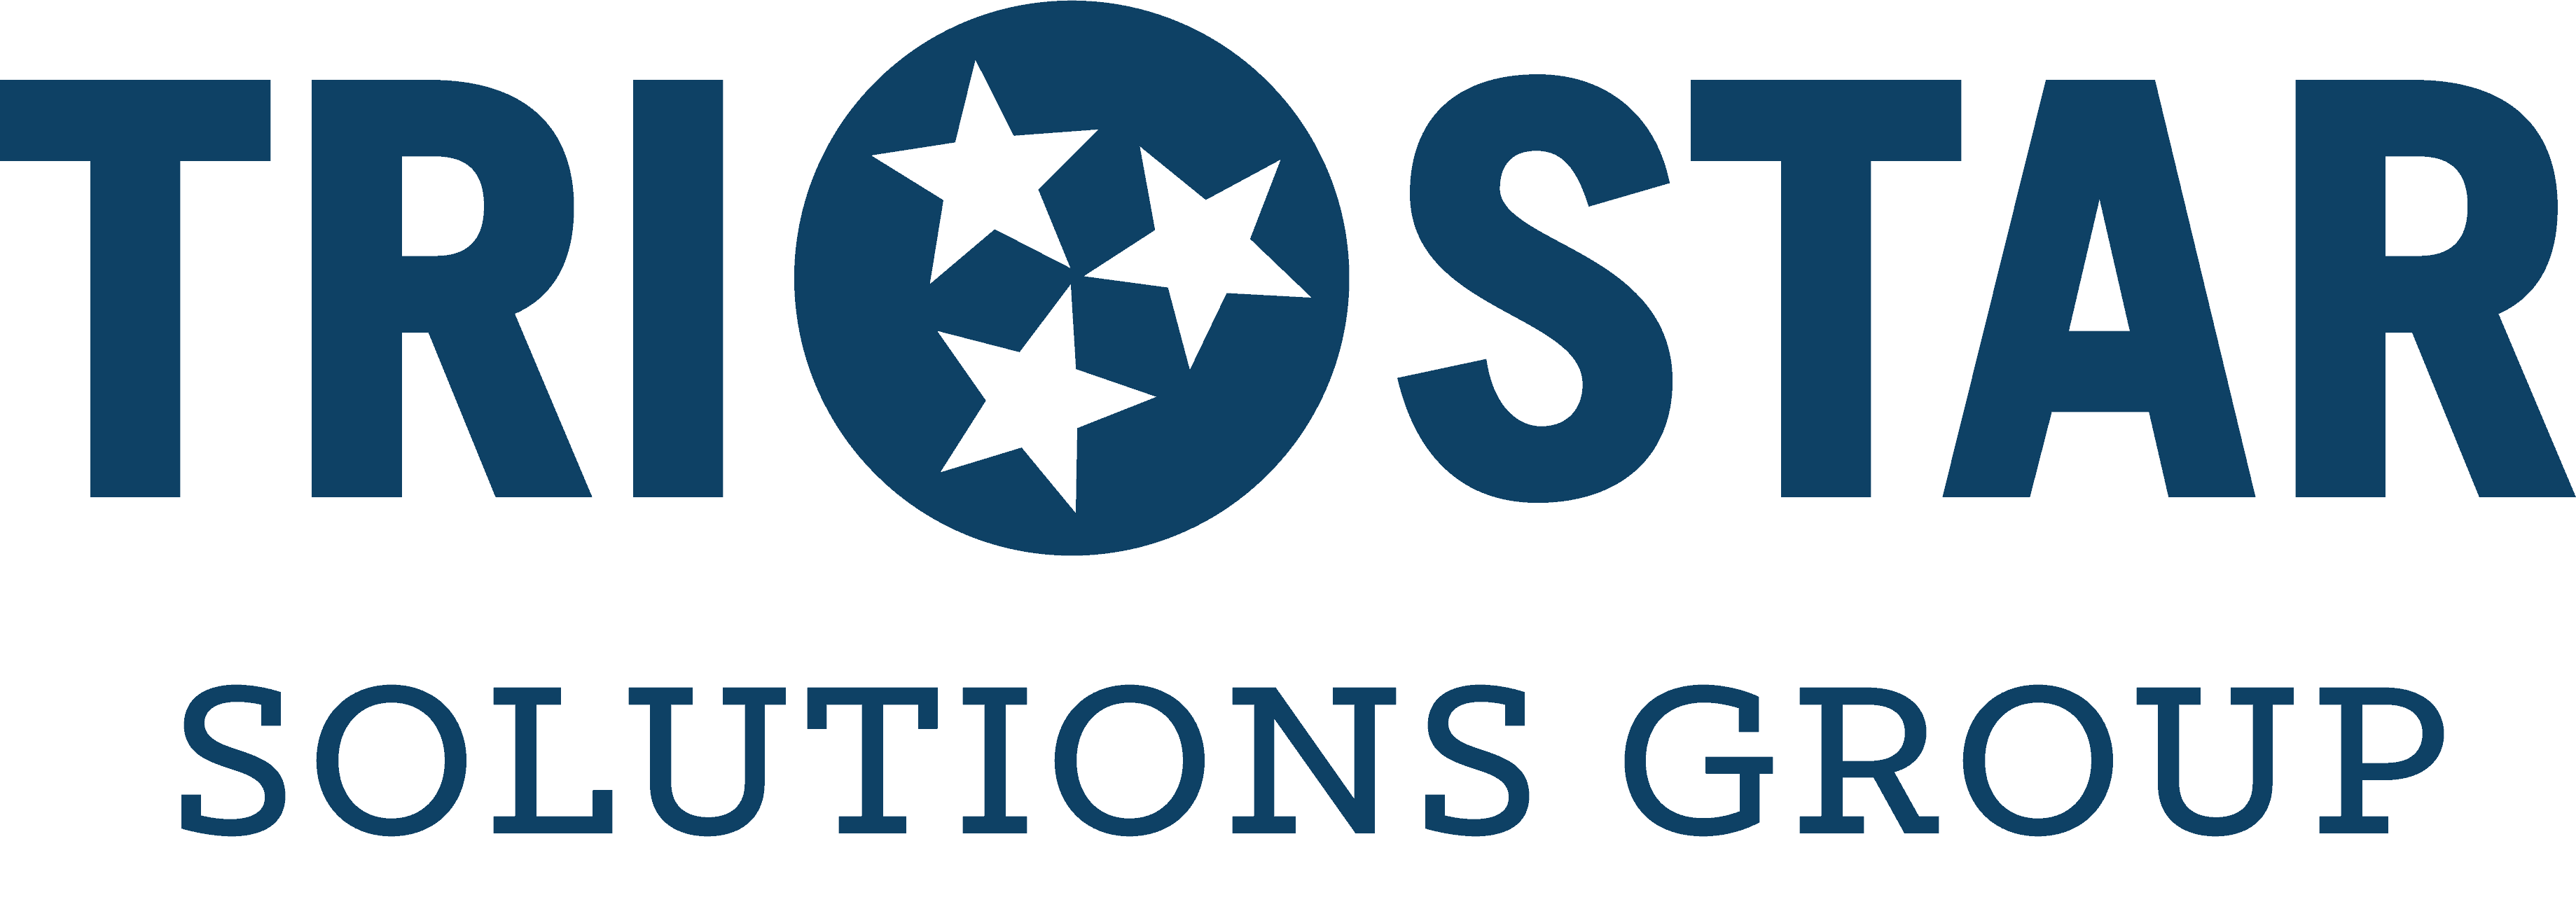 TriStar Solutions Group